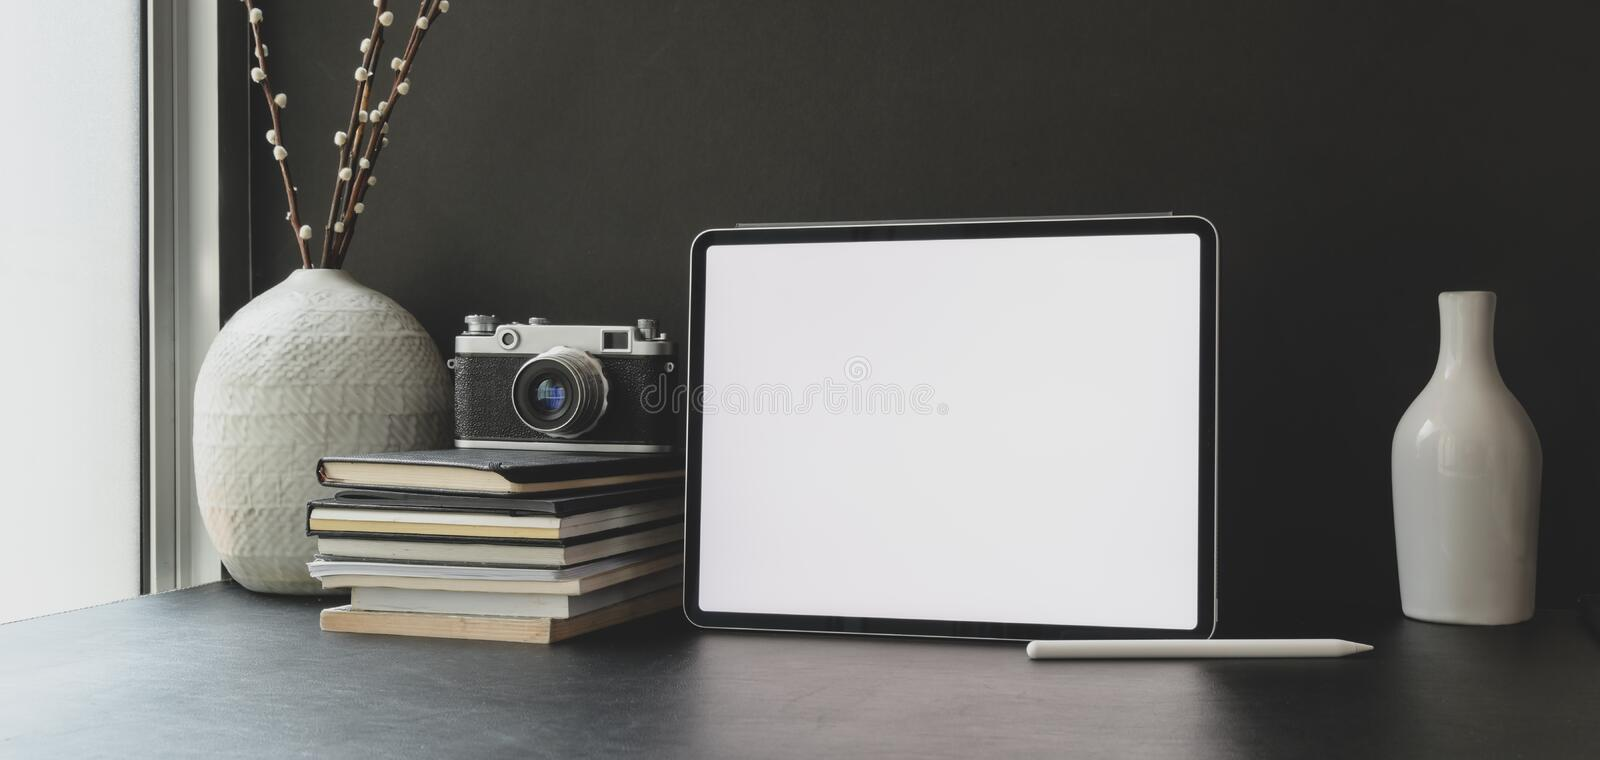 Blank screen tablet in dark trendy workspace with office supplies and ceramic vases decoration. S royalty free stock images